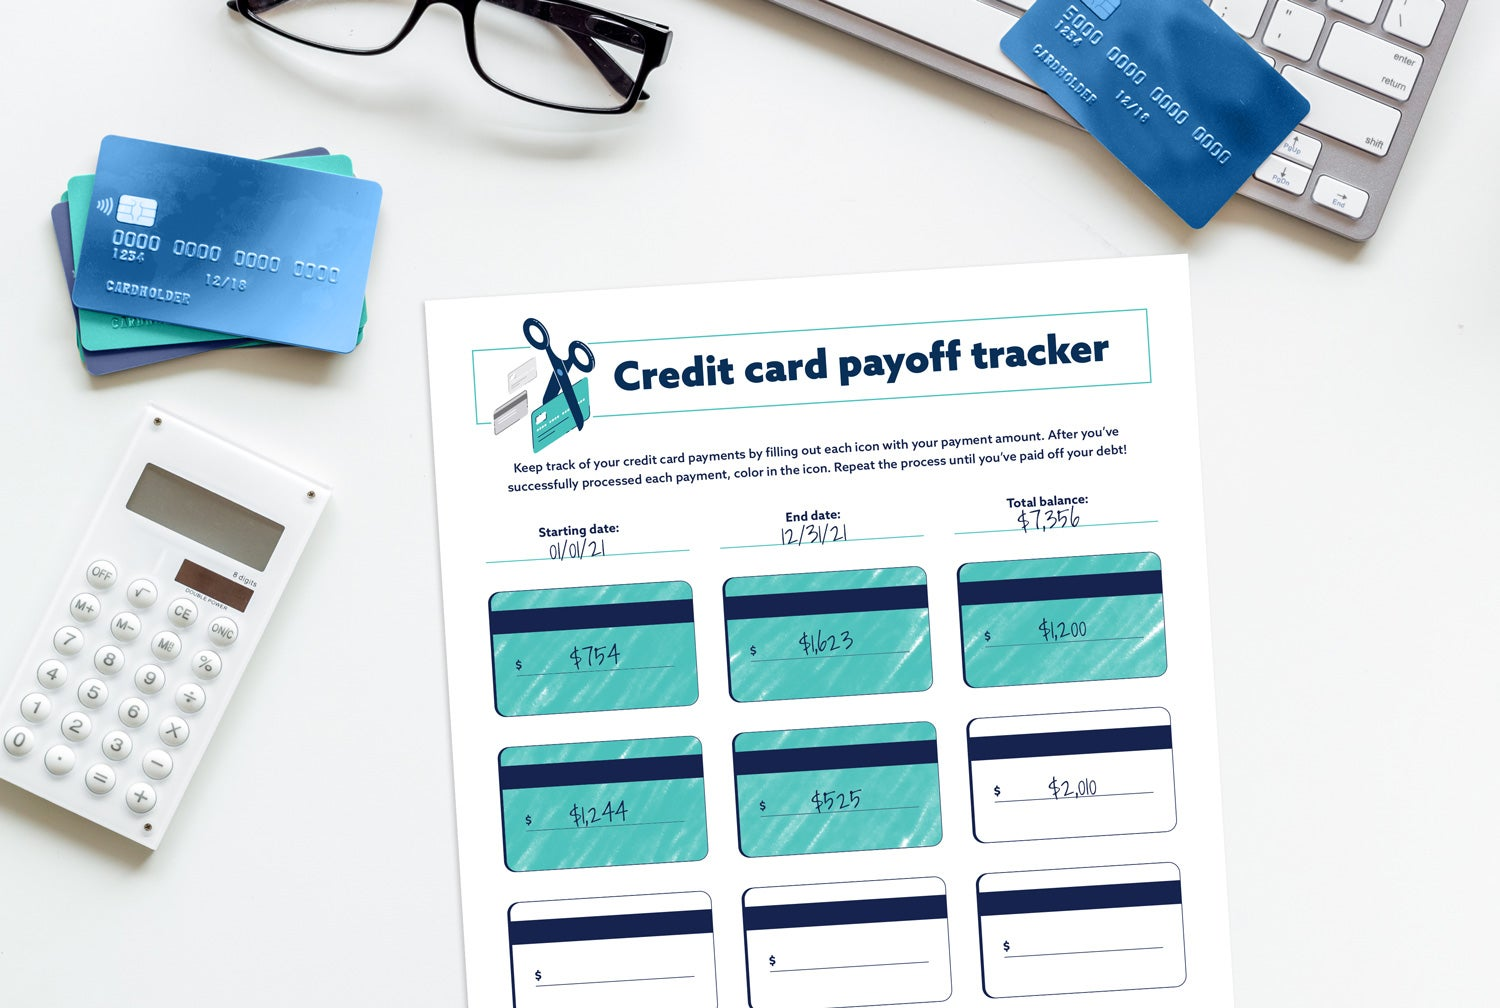 Credit card payoff tracker